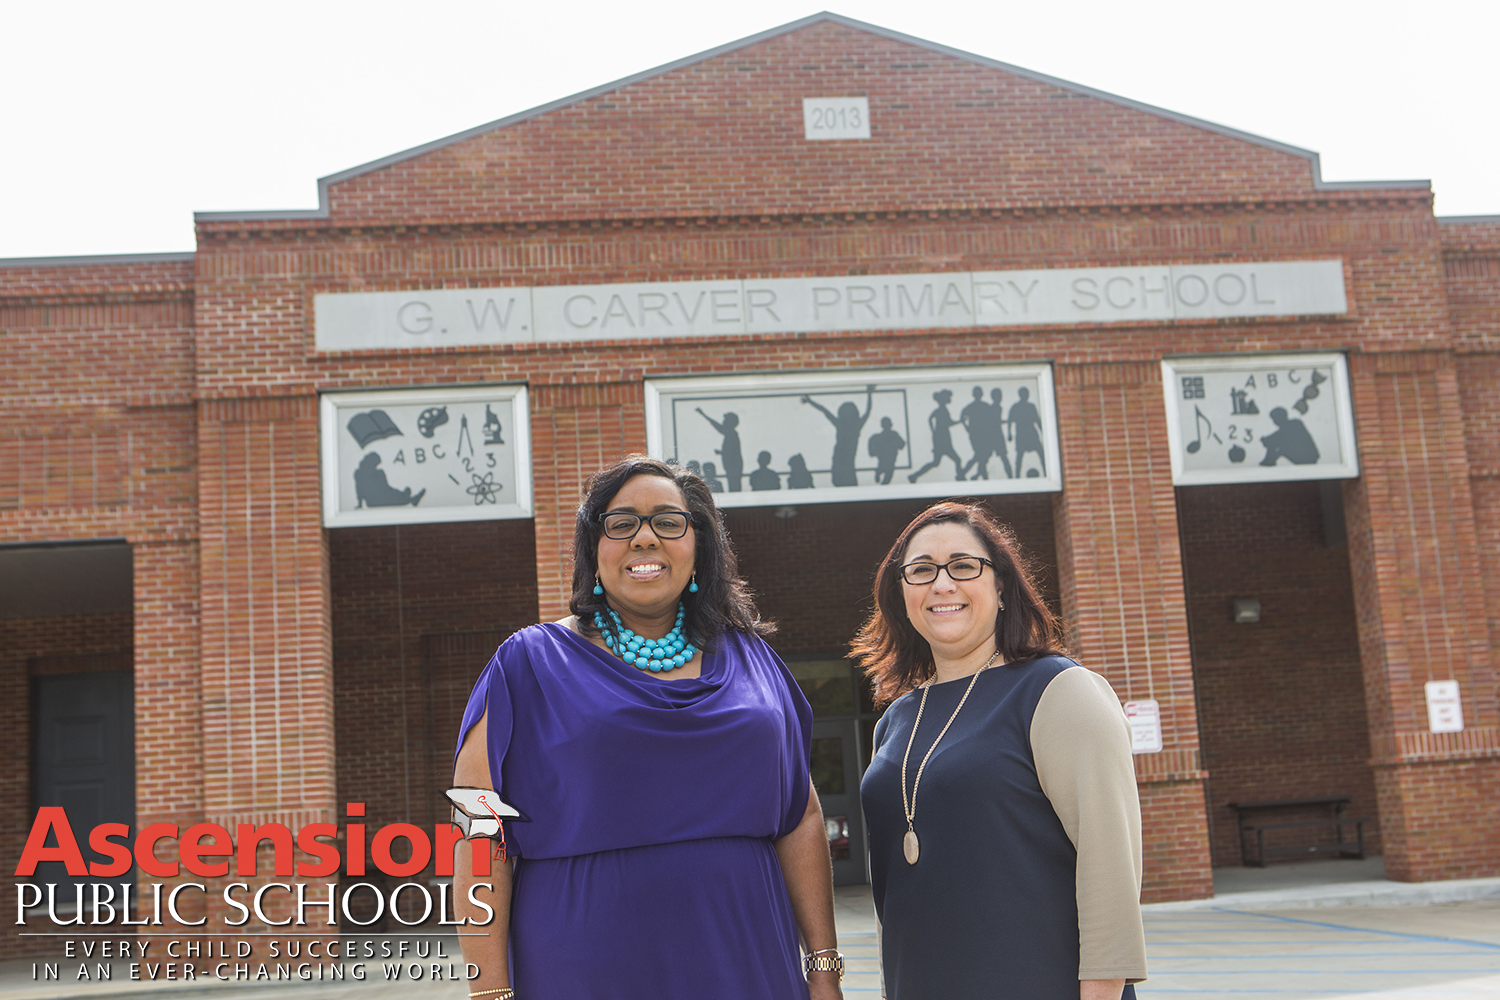 Principal and Asst. Principal at G.W. Carver Primary